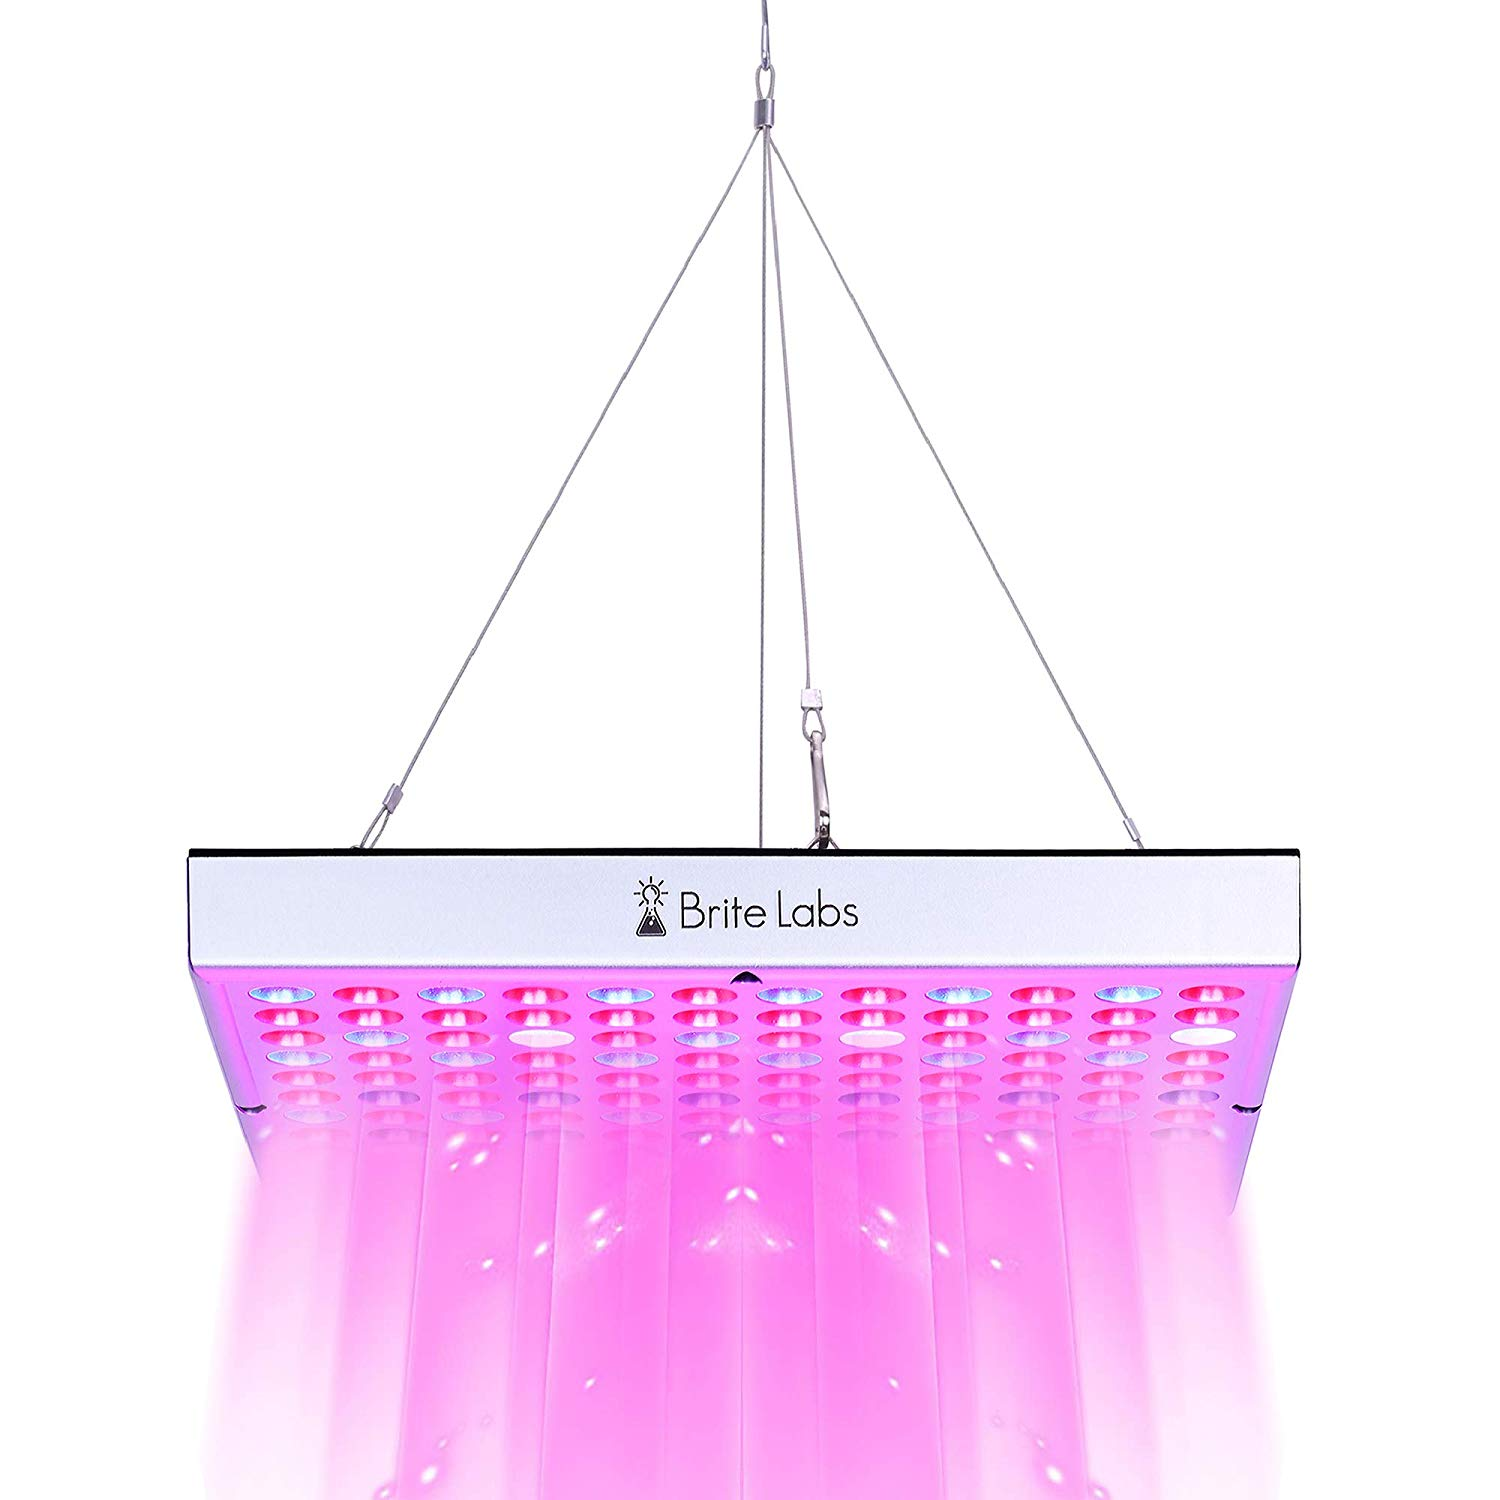 BriteLabs LED Grow Lights for Indoor Plants and Greenhouse, 45W Full Spectrum Plant Growing Light Panel, Hanging Kit and Accessories Included